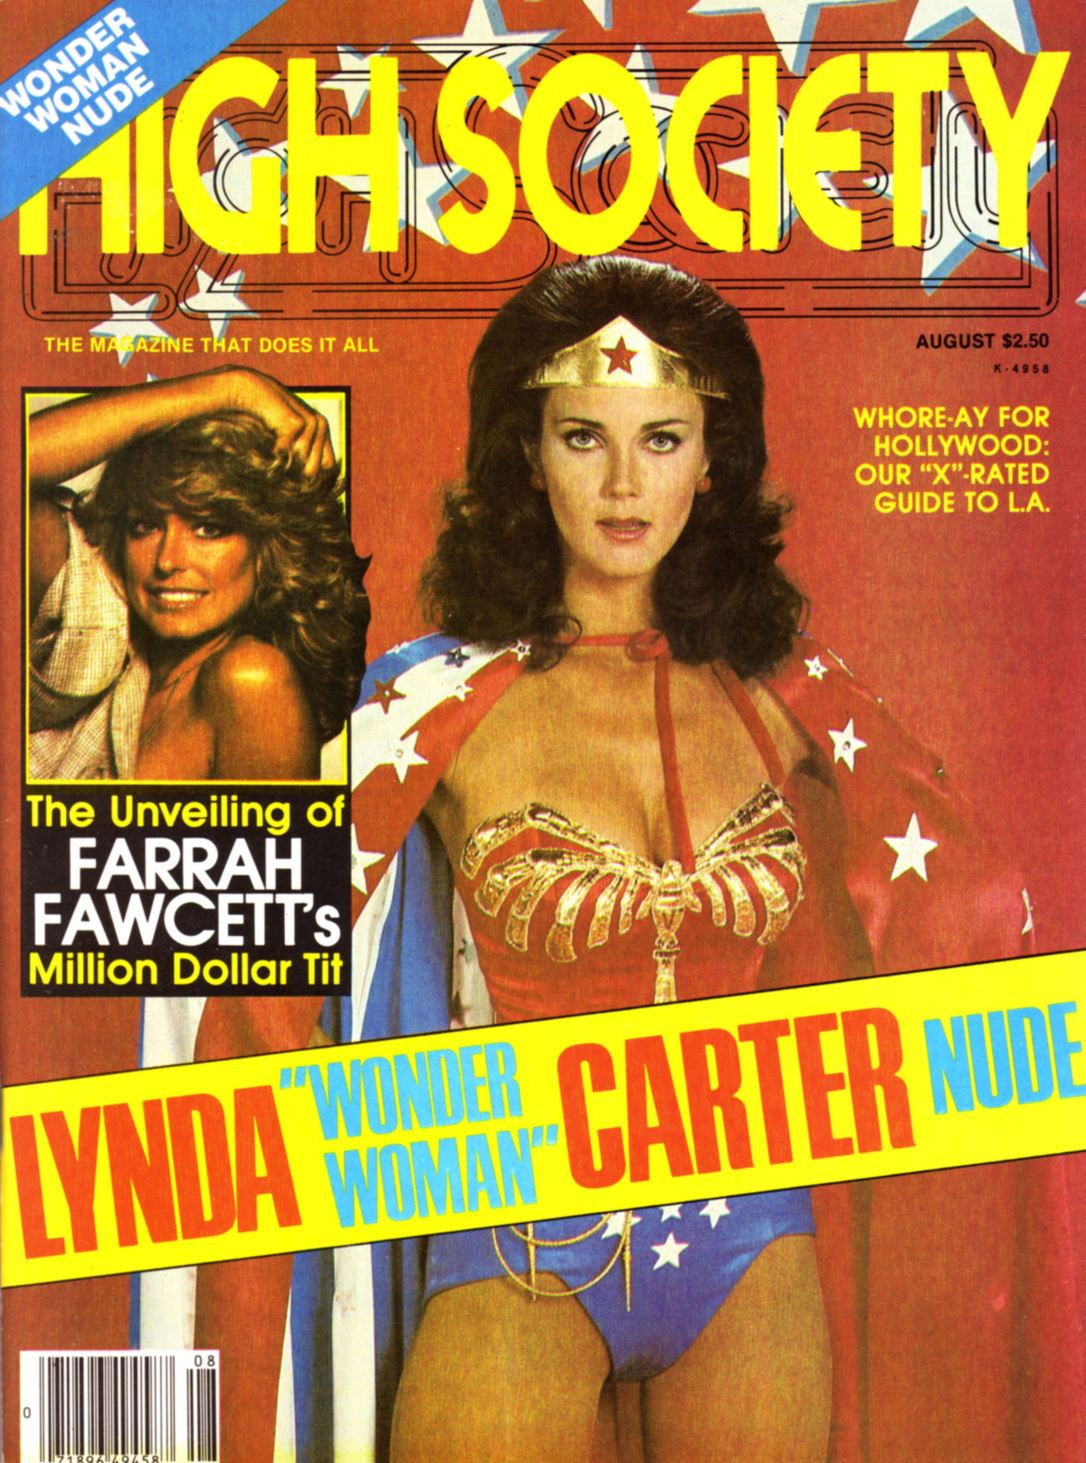 Lynda.Carter.High.Society.01